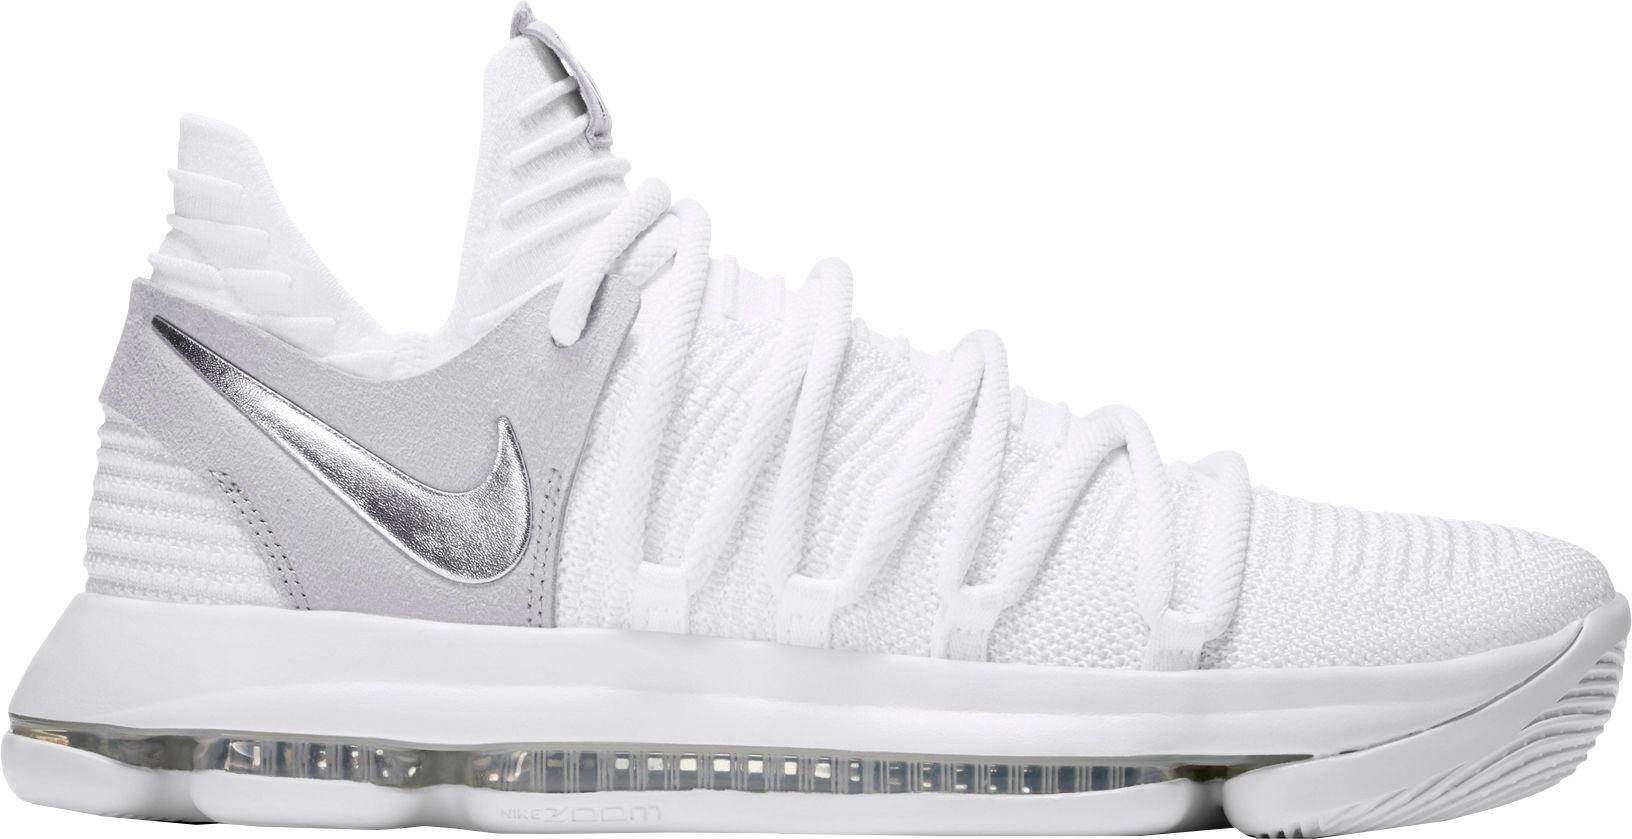 95f15b8b8025 Lyst - Nike Zoom Kd 10 Basketball Shoes in White for Men